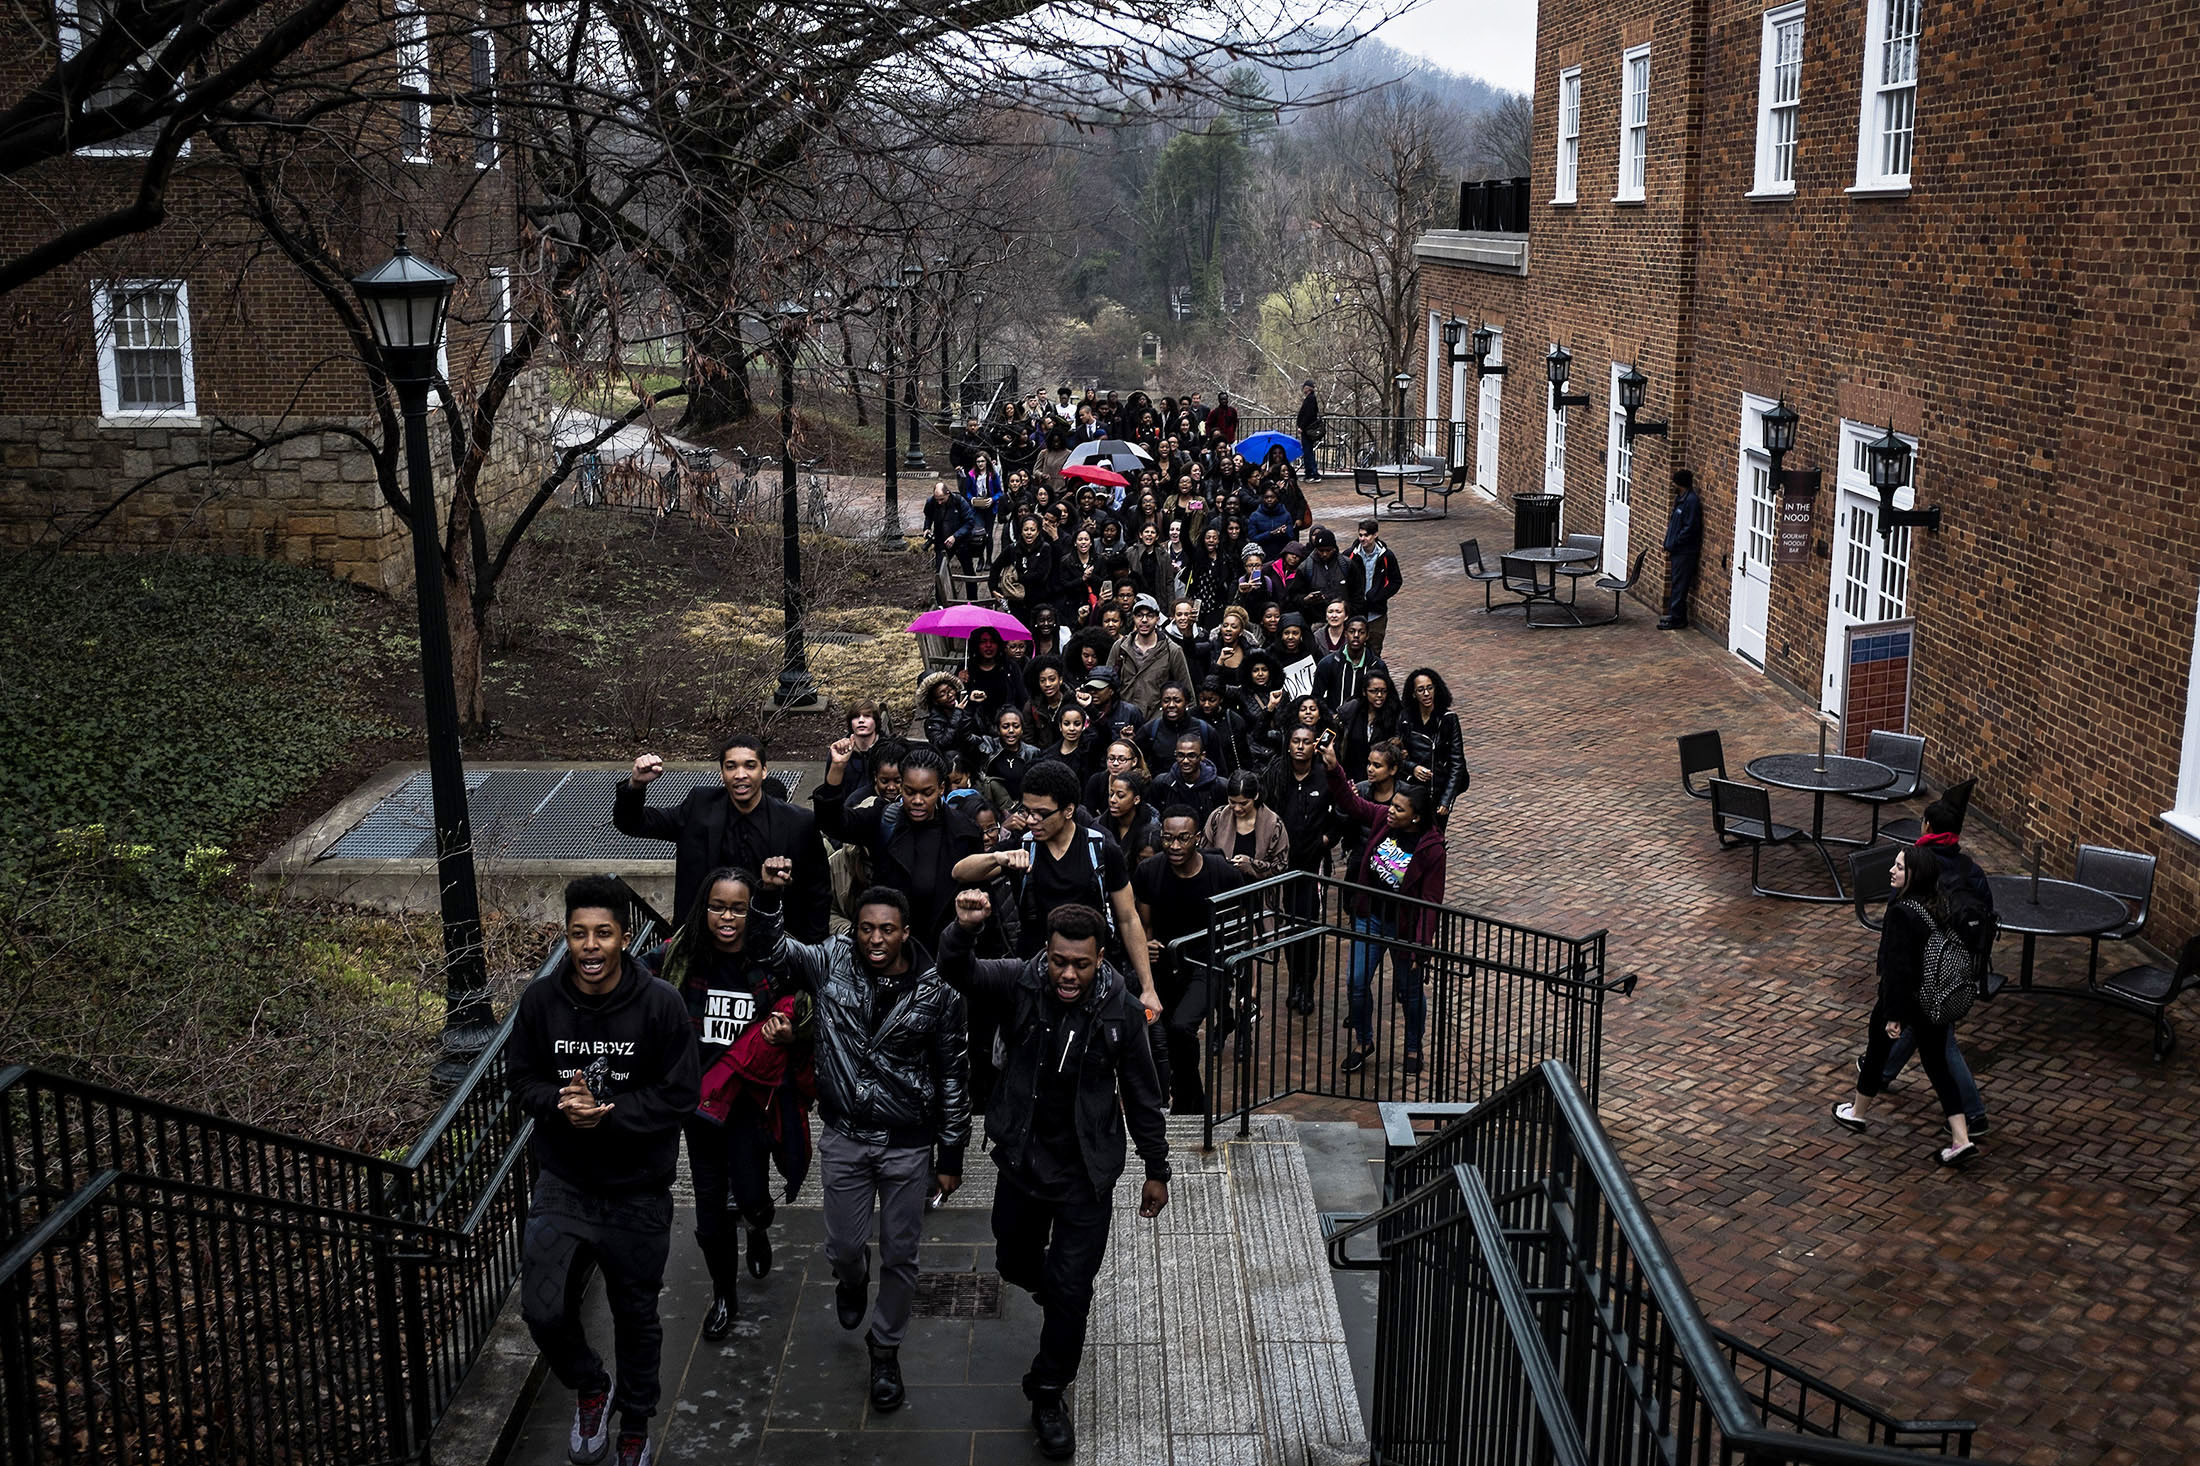 Students protest at the University of Virginia following the arrest by ABC police of student Martese Johnson outside a bar in Charlottesville, Va. on March 20, 2015.